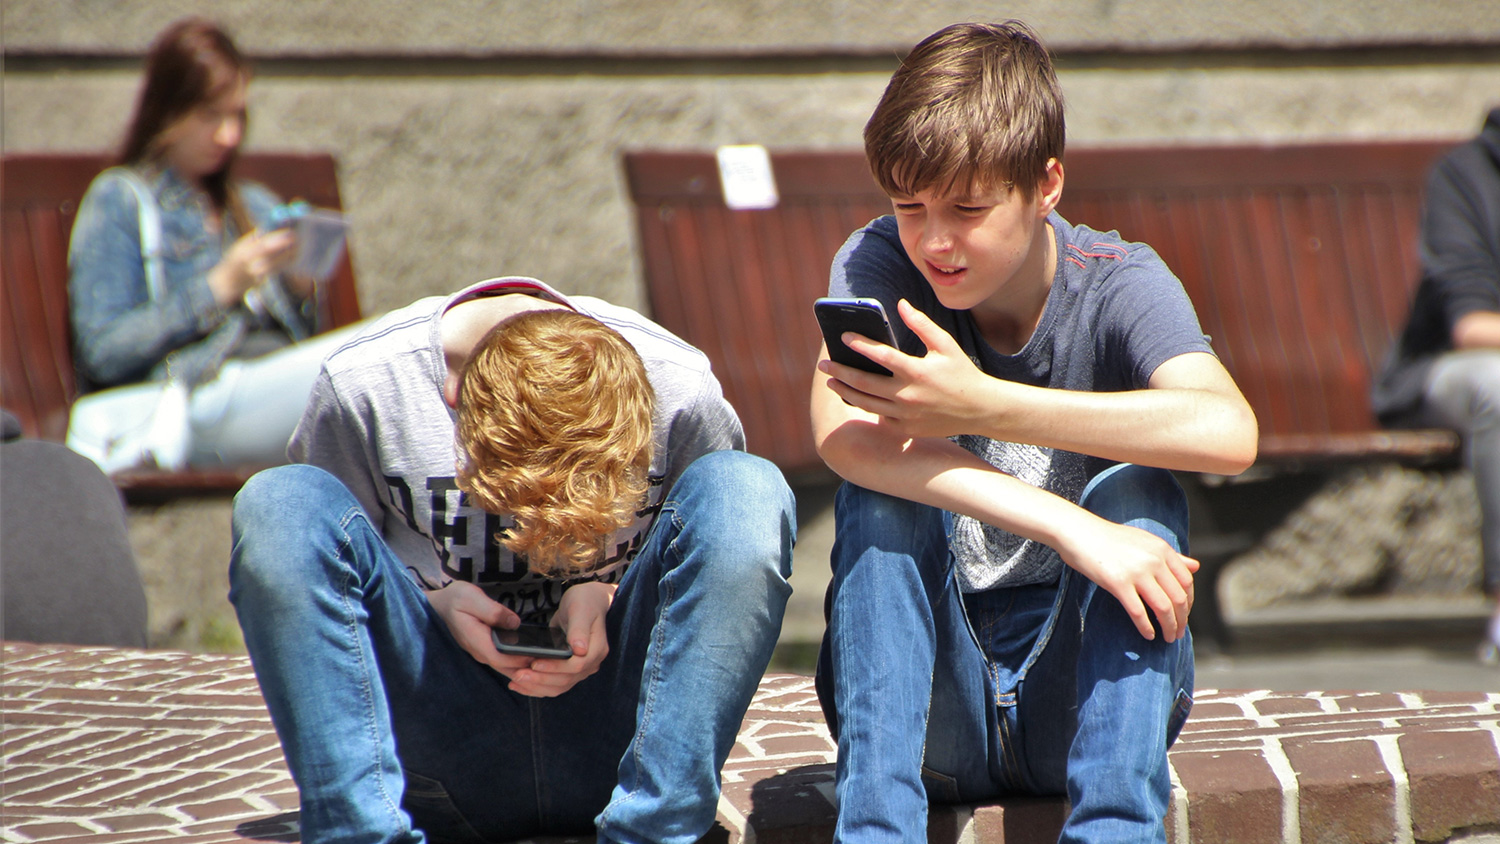 2 young kids on there phones